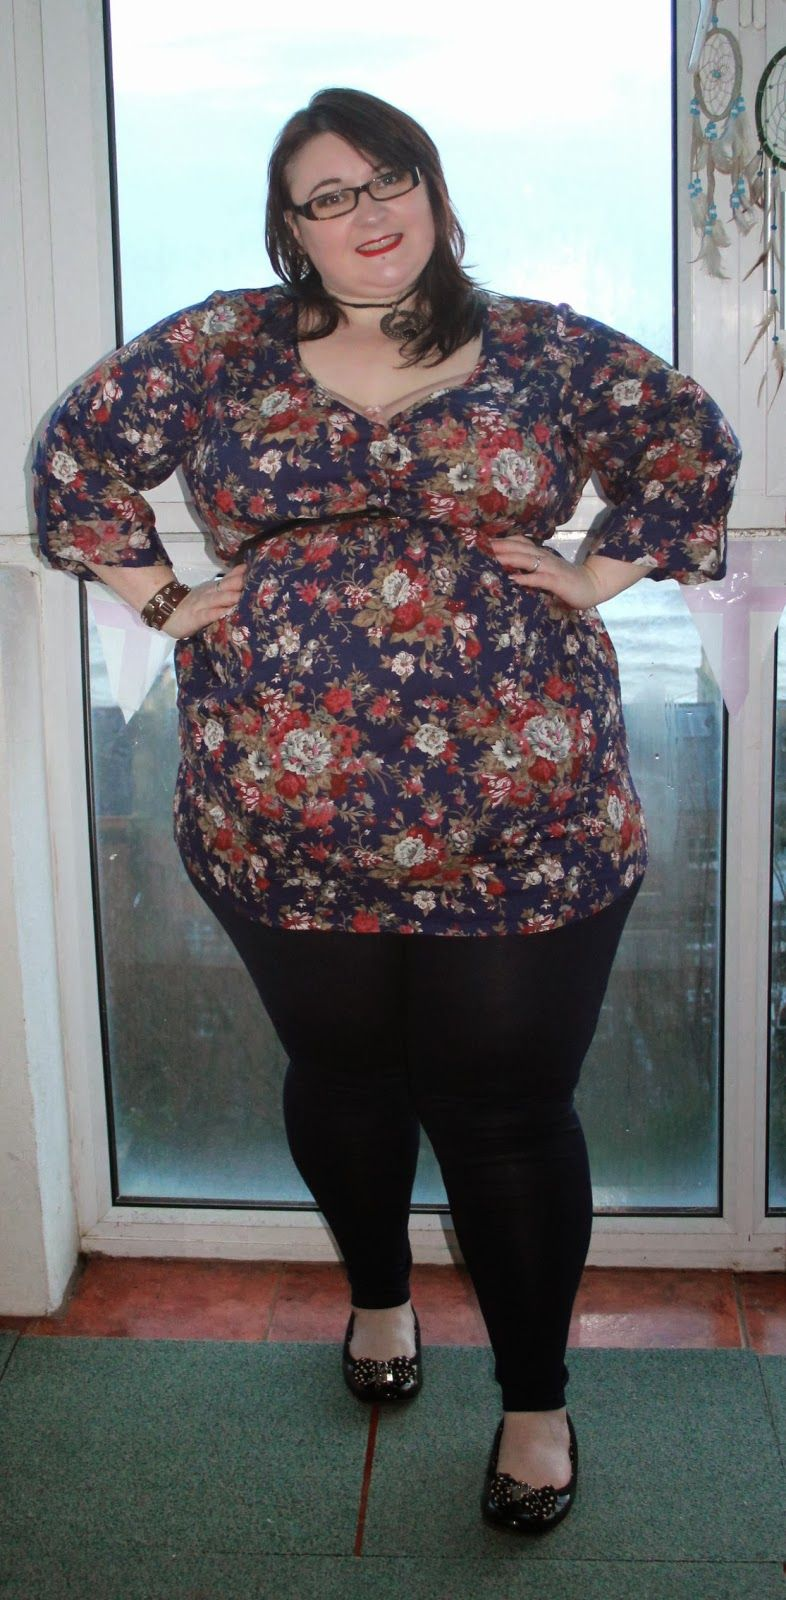 Just me, Leah.: Short, Tall and In Between OOTD*. www.justmeleah.co.uk #fatshion #plussize #bodypositive #plussizefashion